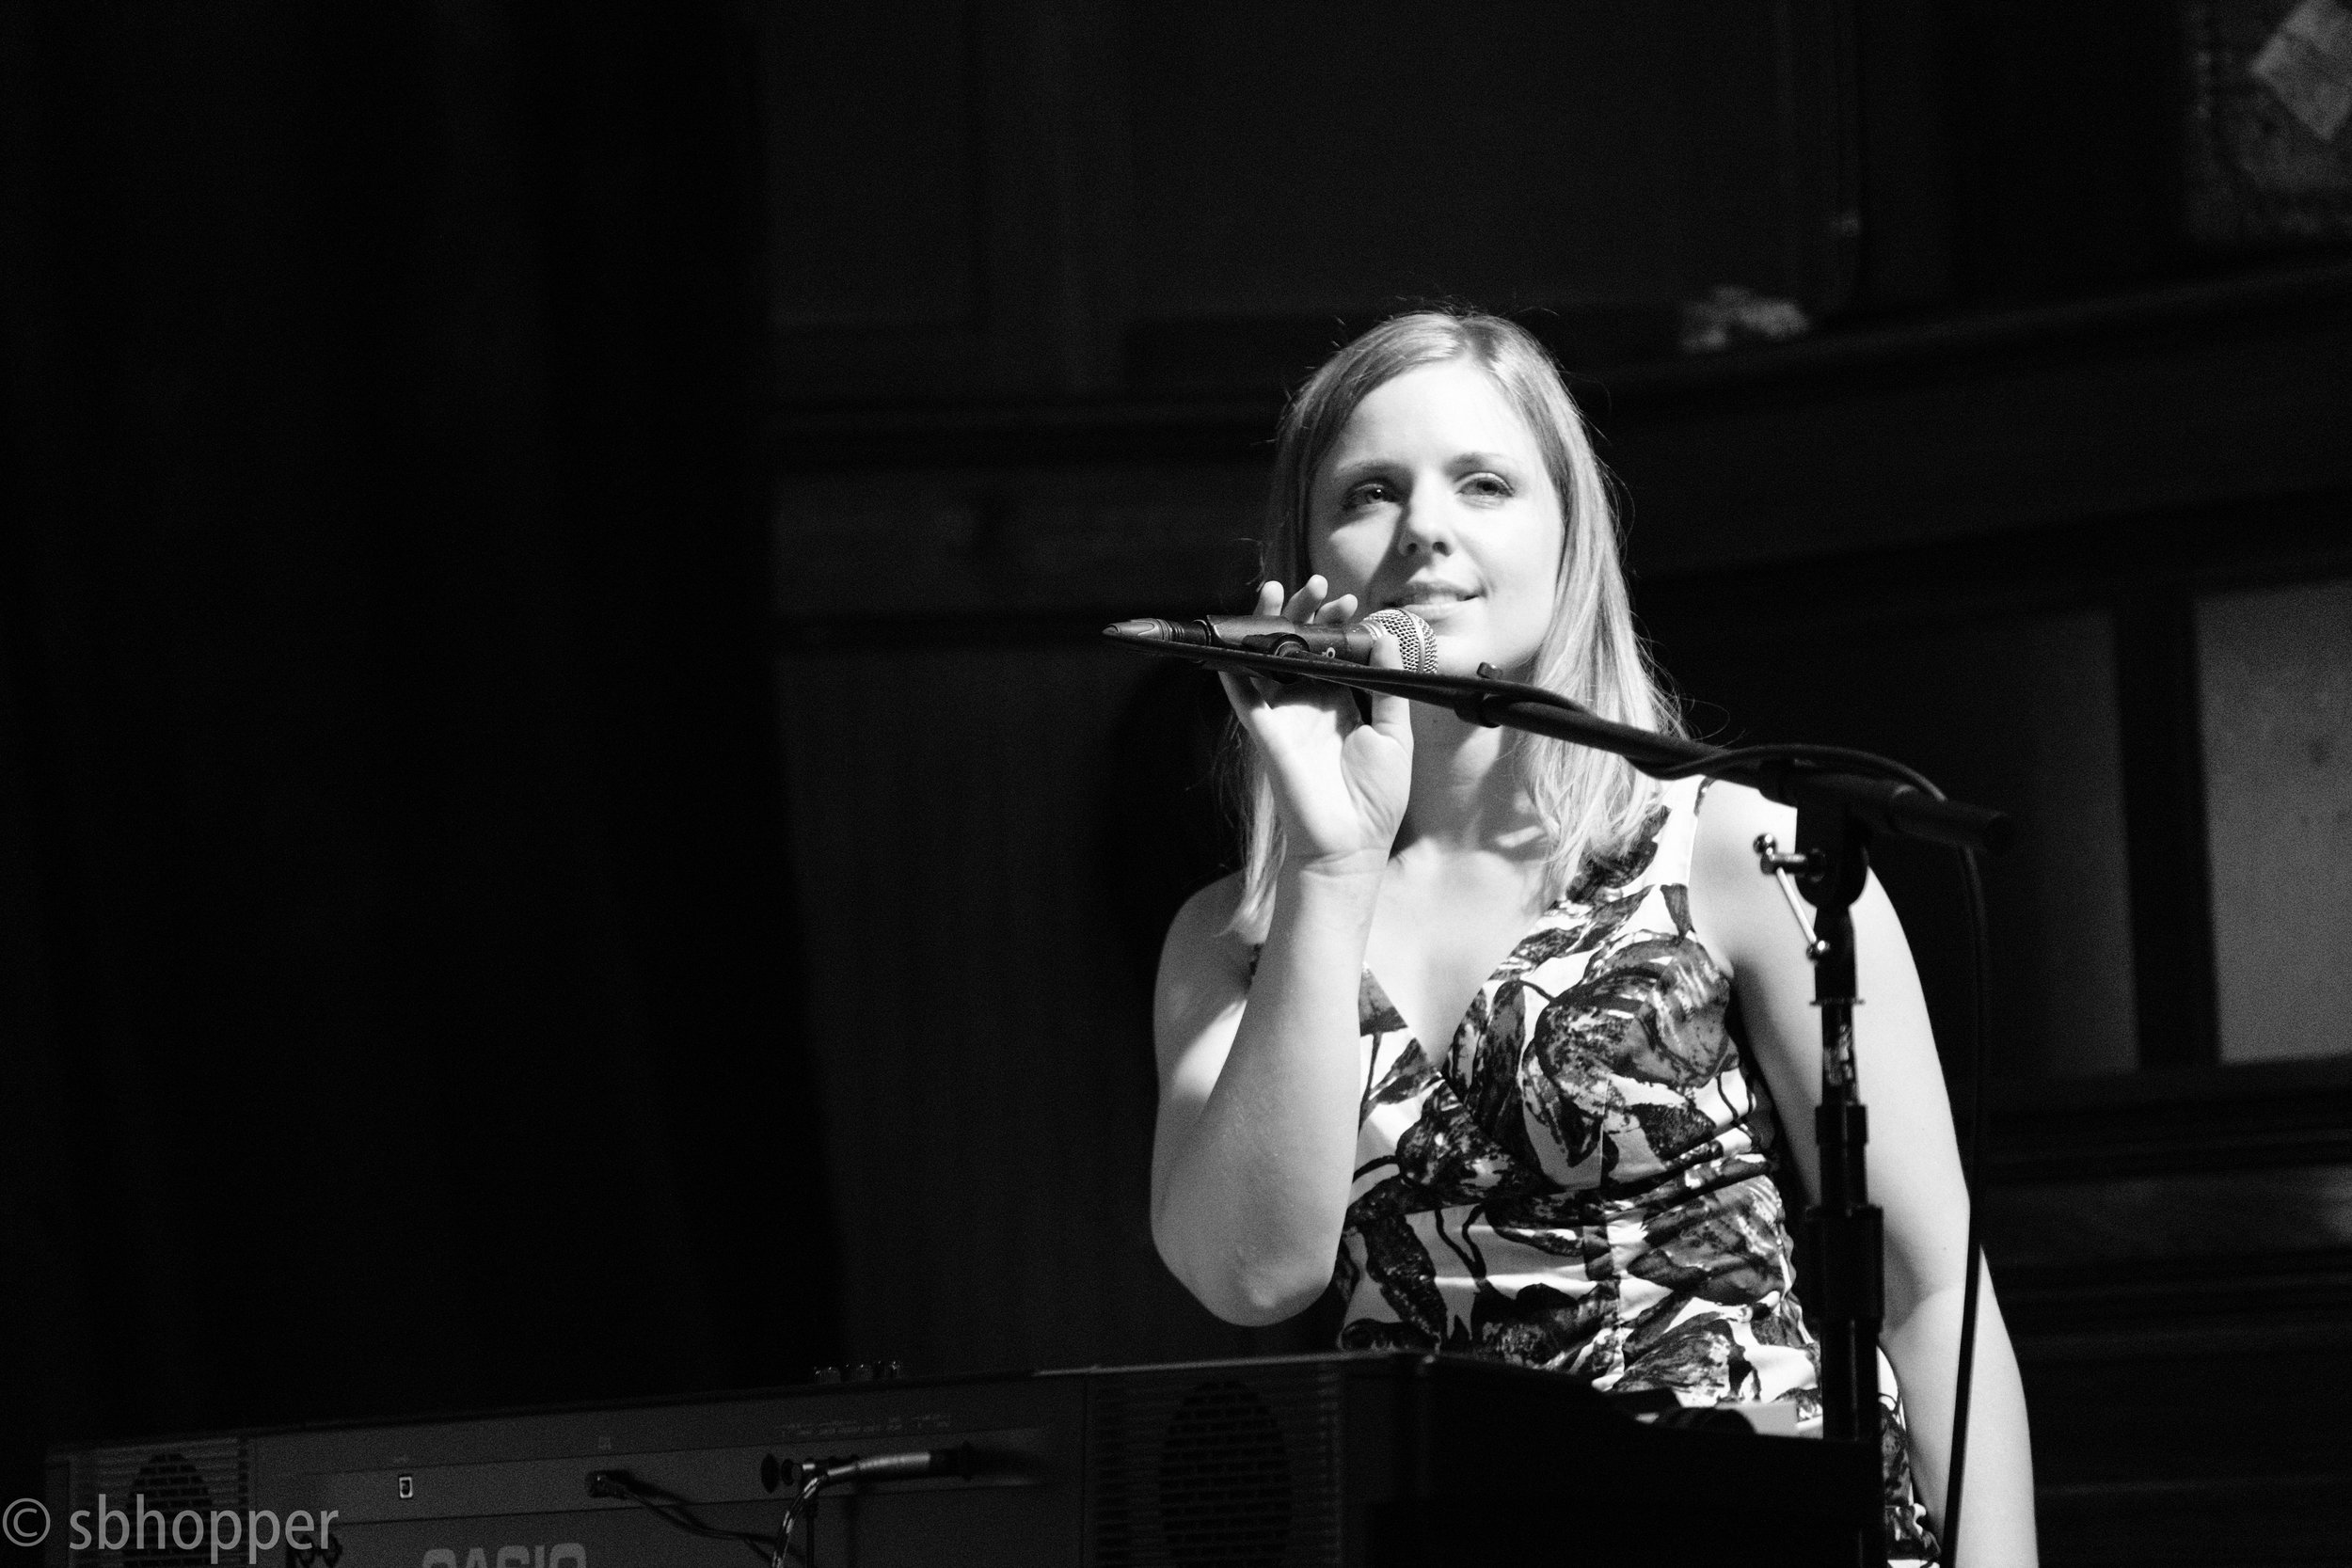 Legal Voice Benefit at Conor Byrne small (22 of 33).jpg